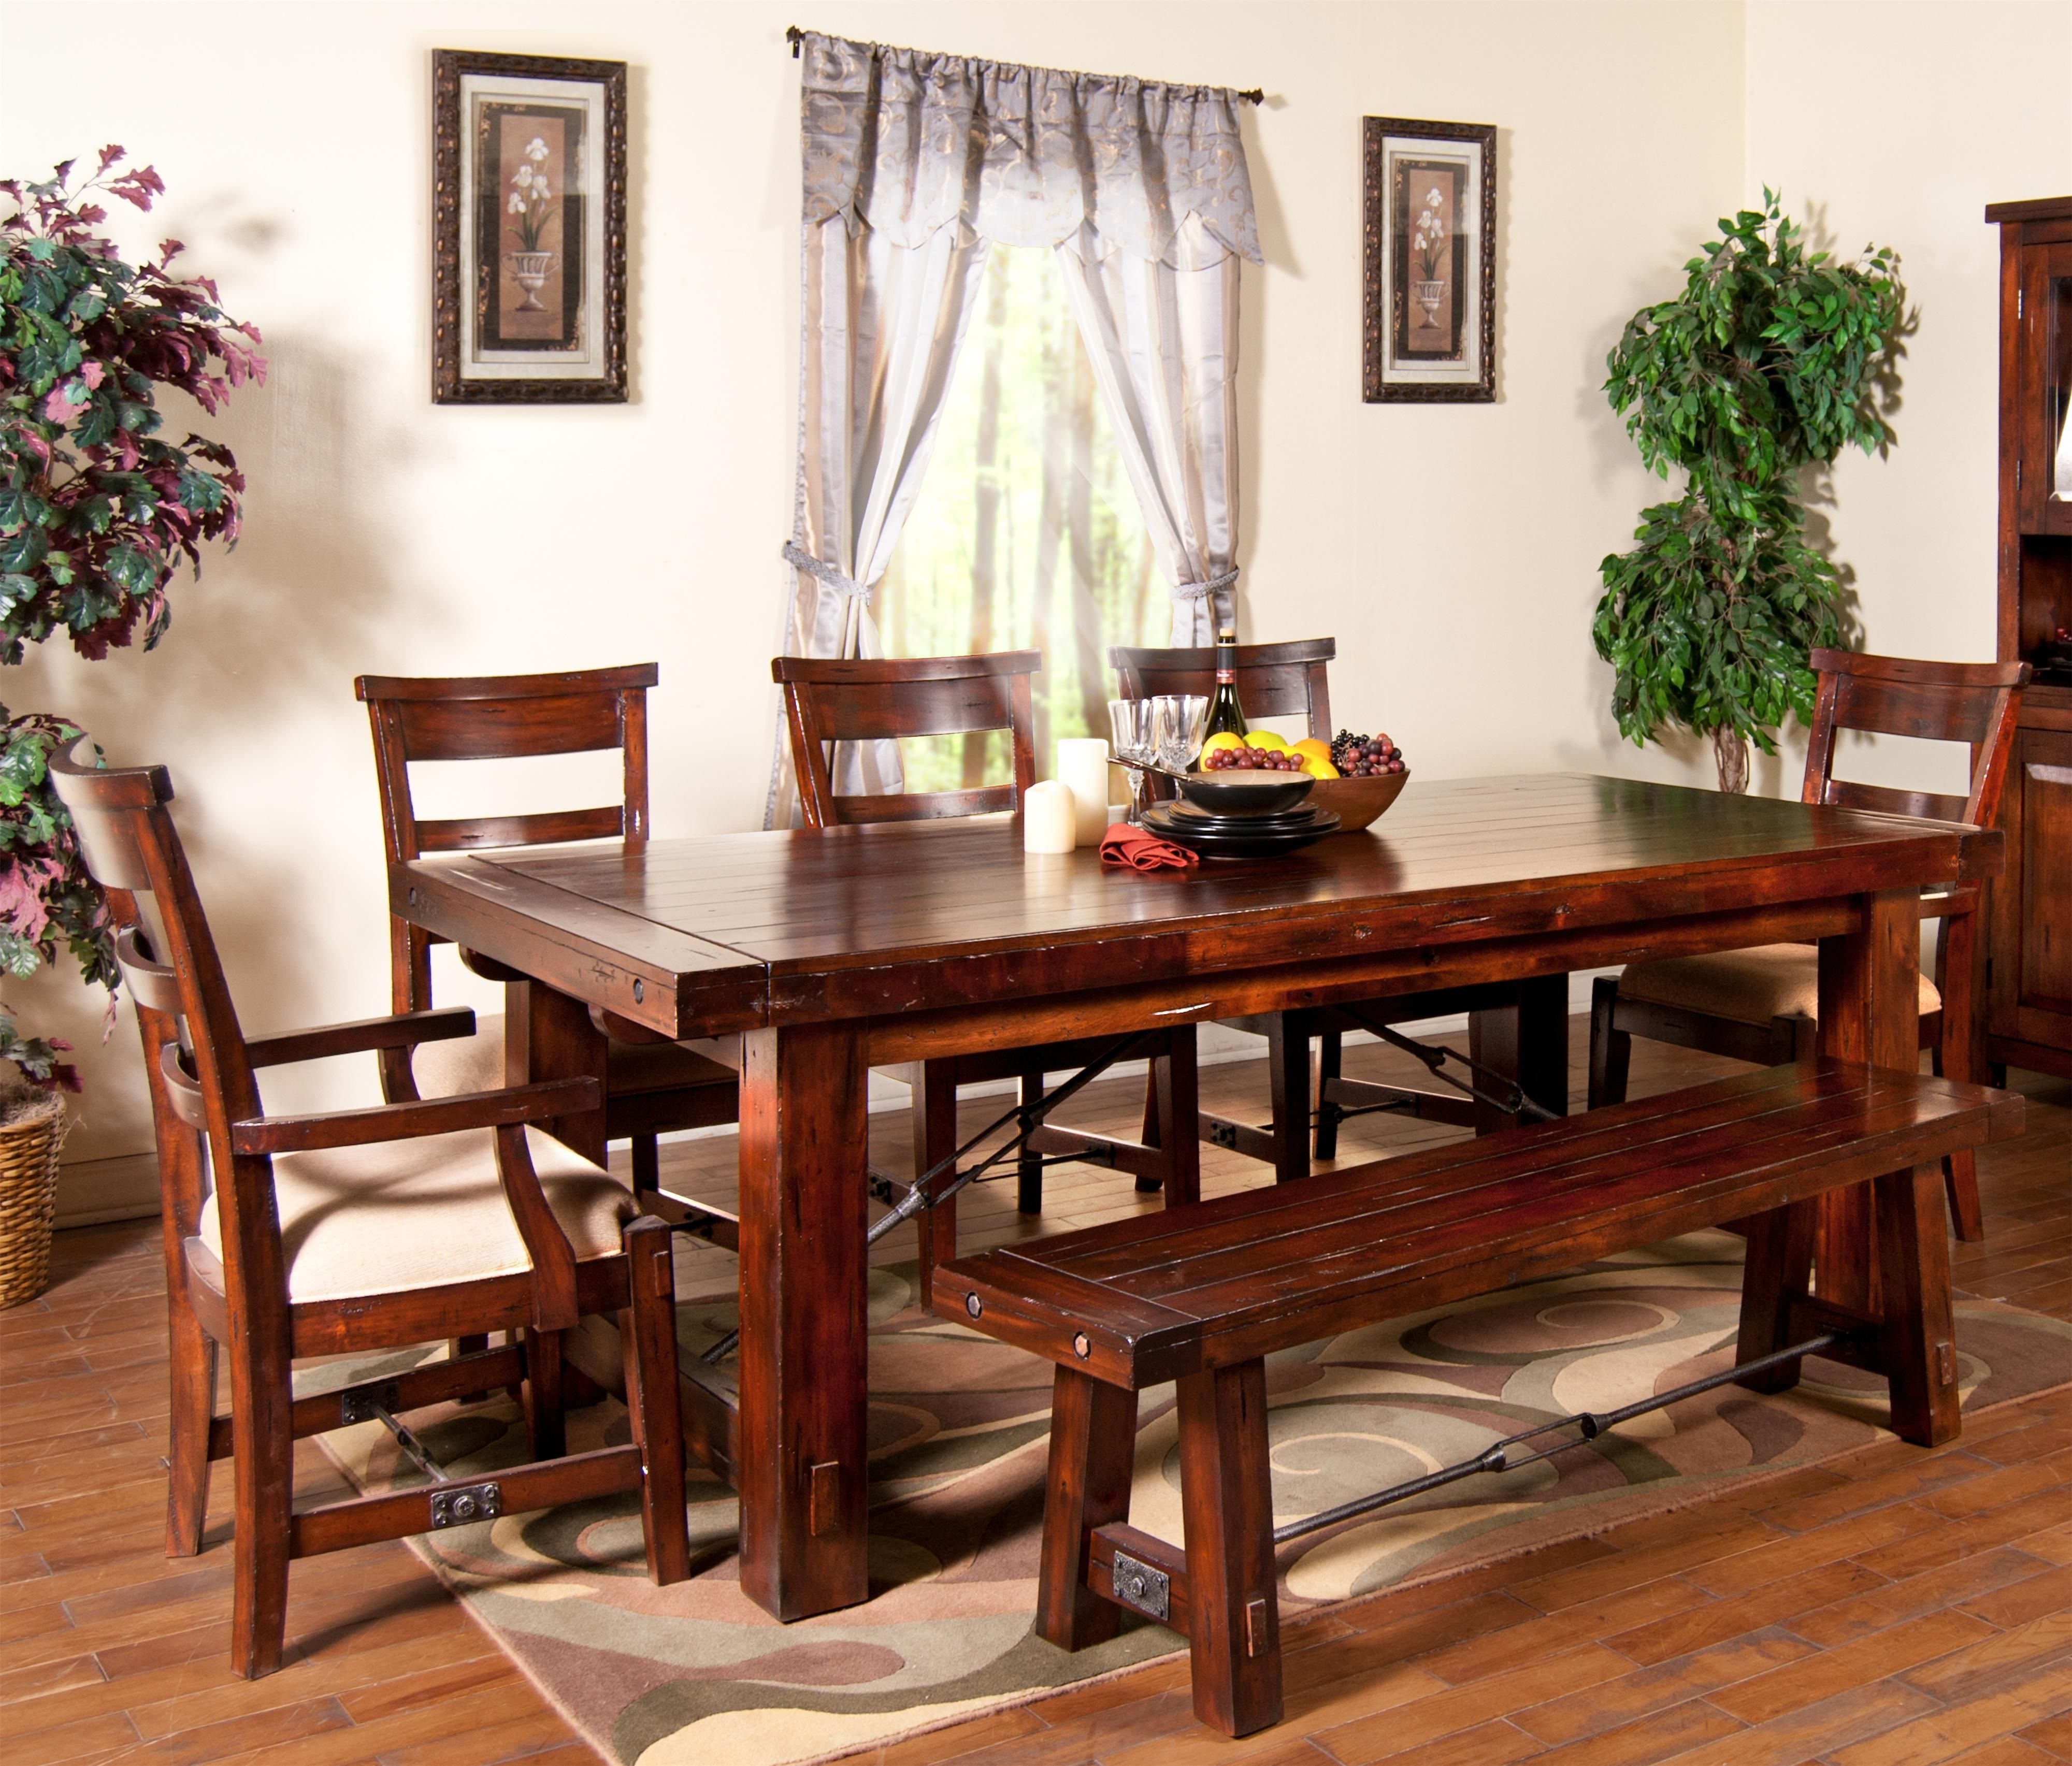 Dining Room Table Sets Art Van fmufpi Pinterest